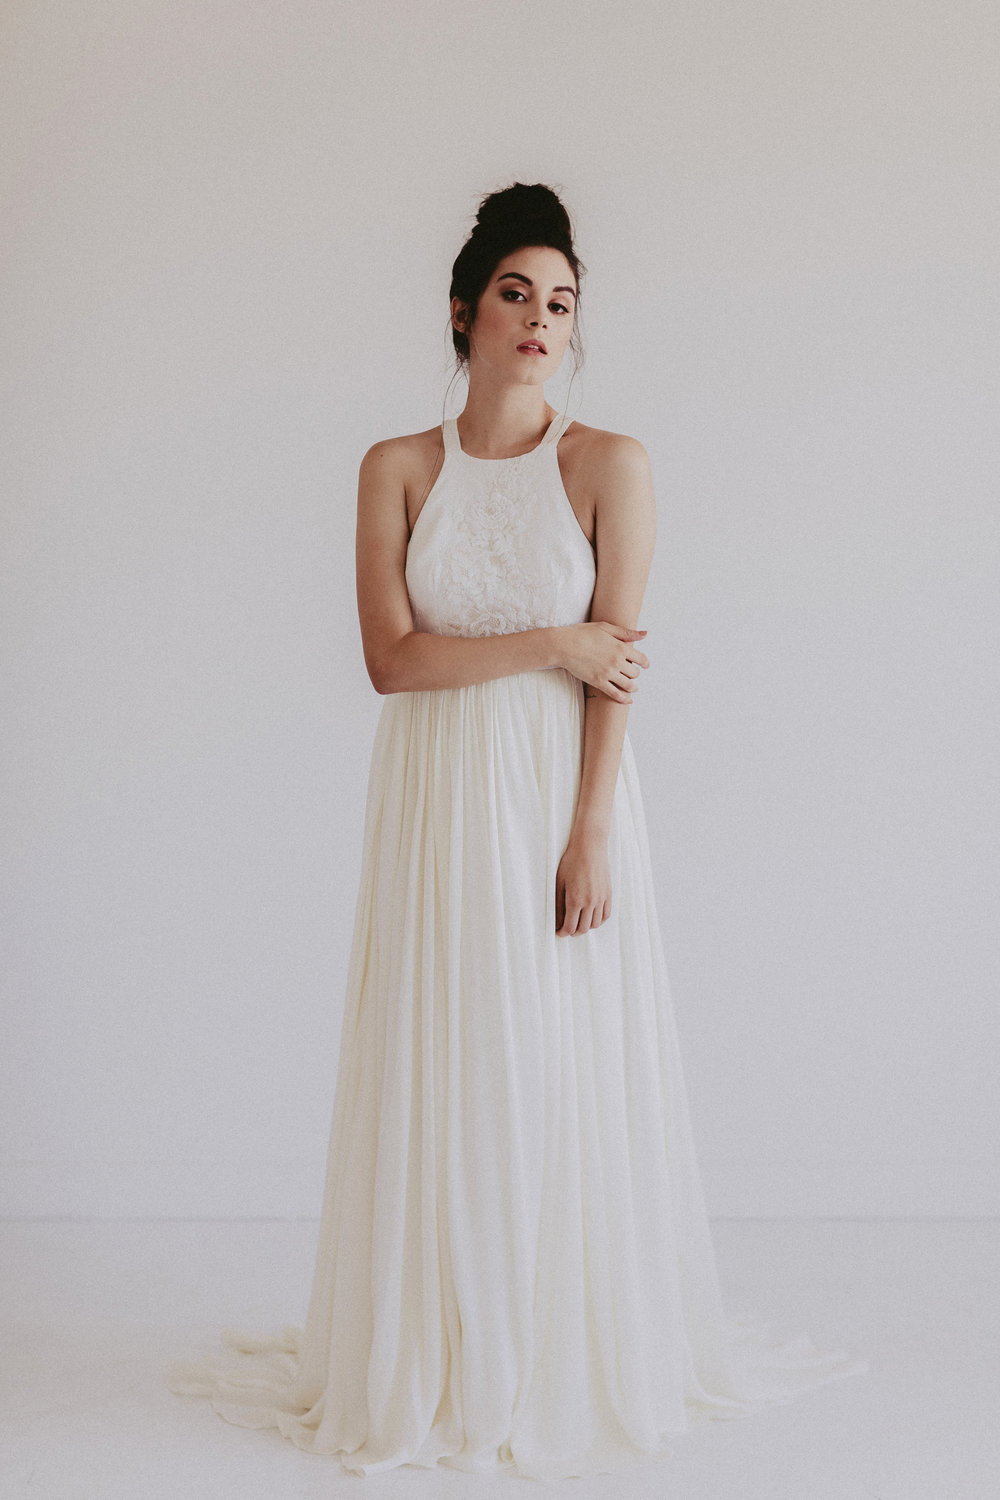 Austin by Chantel Lauren chiffon silk wedding gown flowy boho western